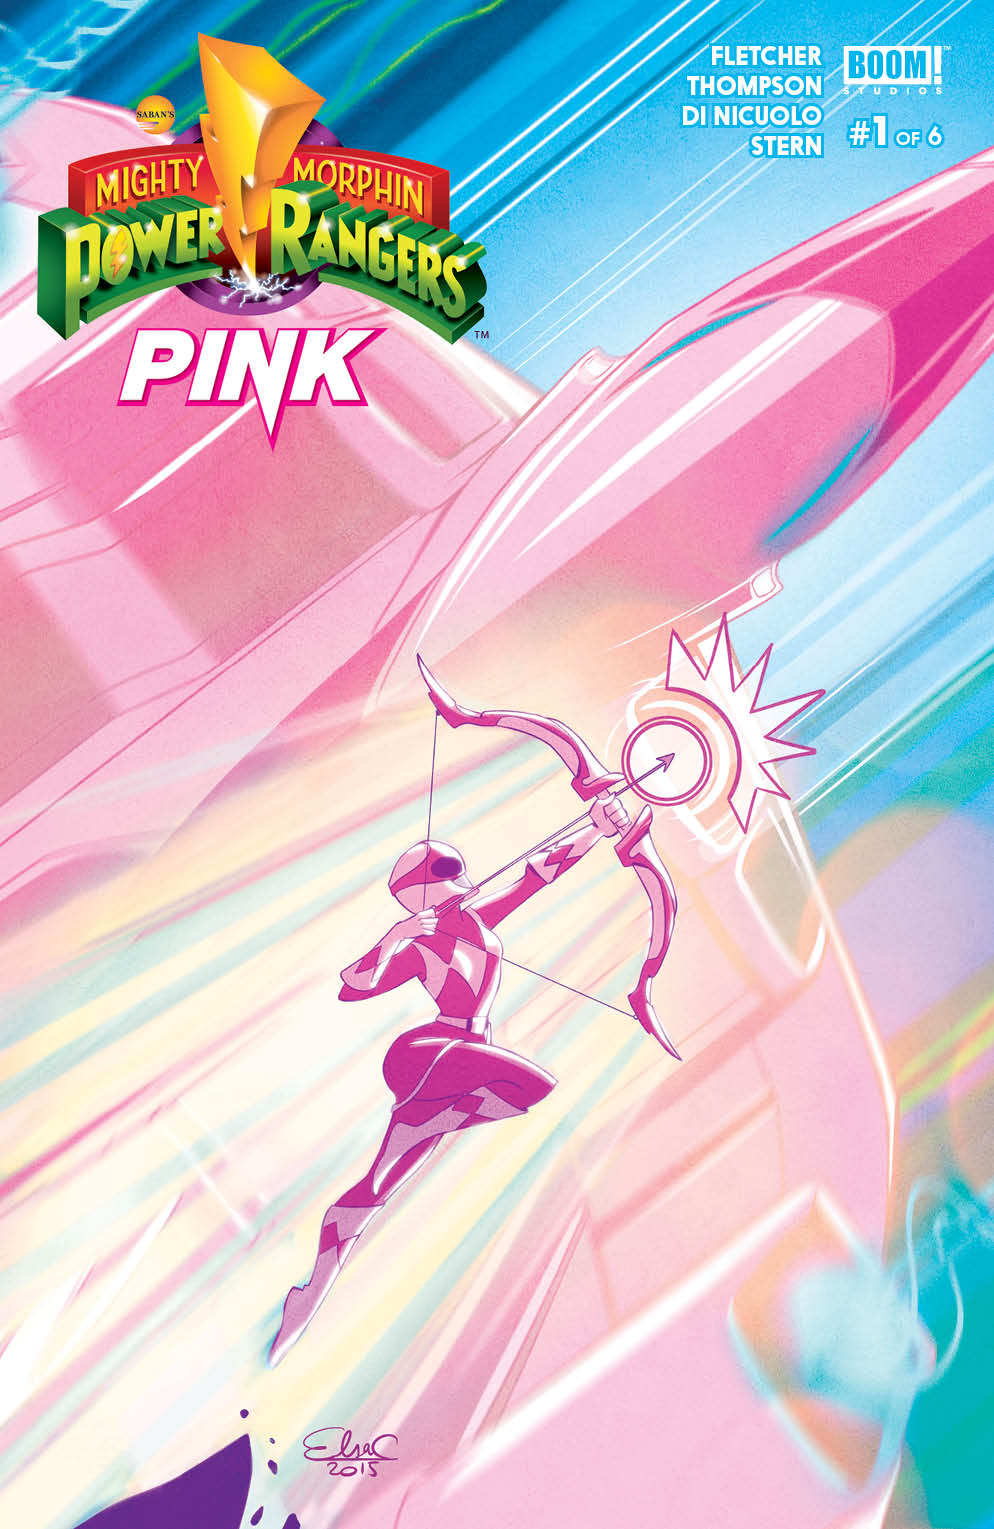 Mighty Morphin Power Rangers: Pink 0001a